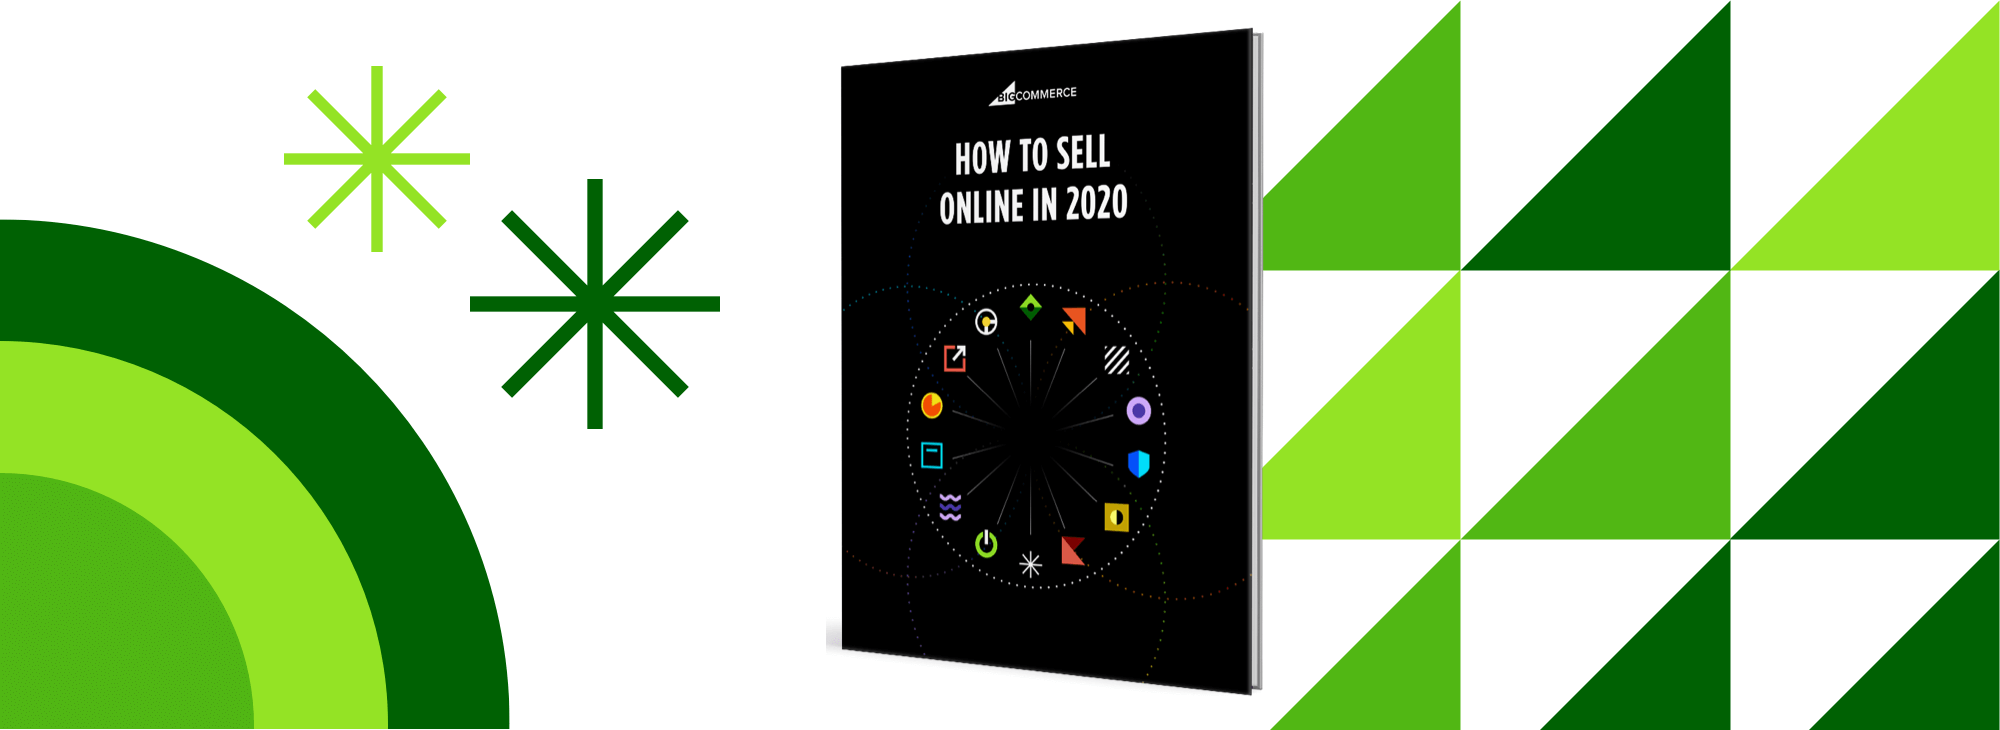 how to sell online in 2020